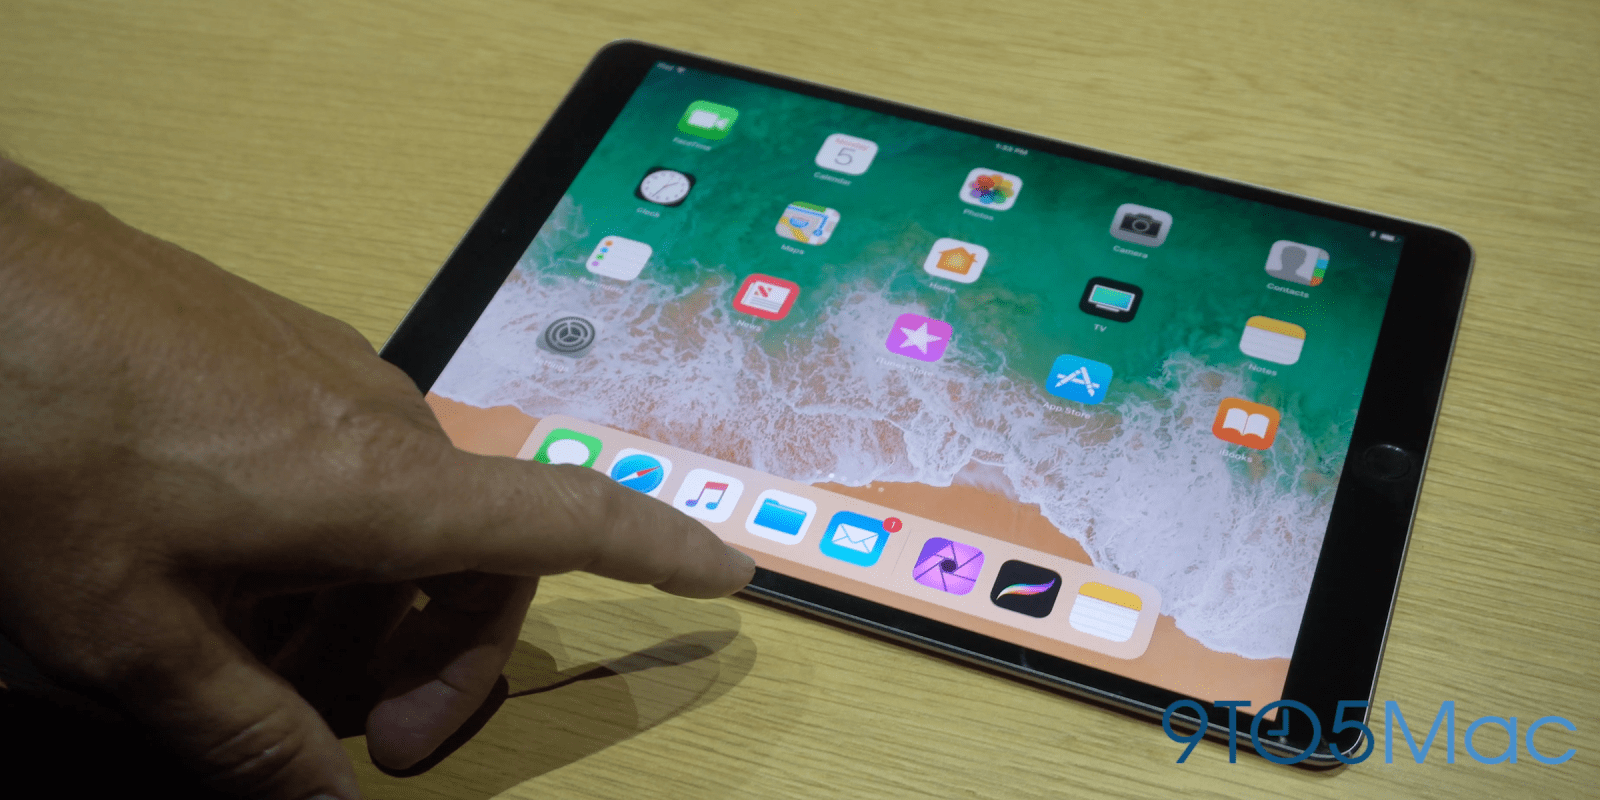 Hands-on with iOS 11 features on the new 10.5-inch iPad Pro